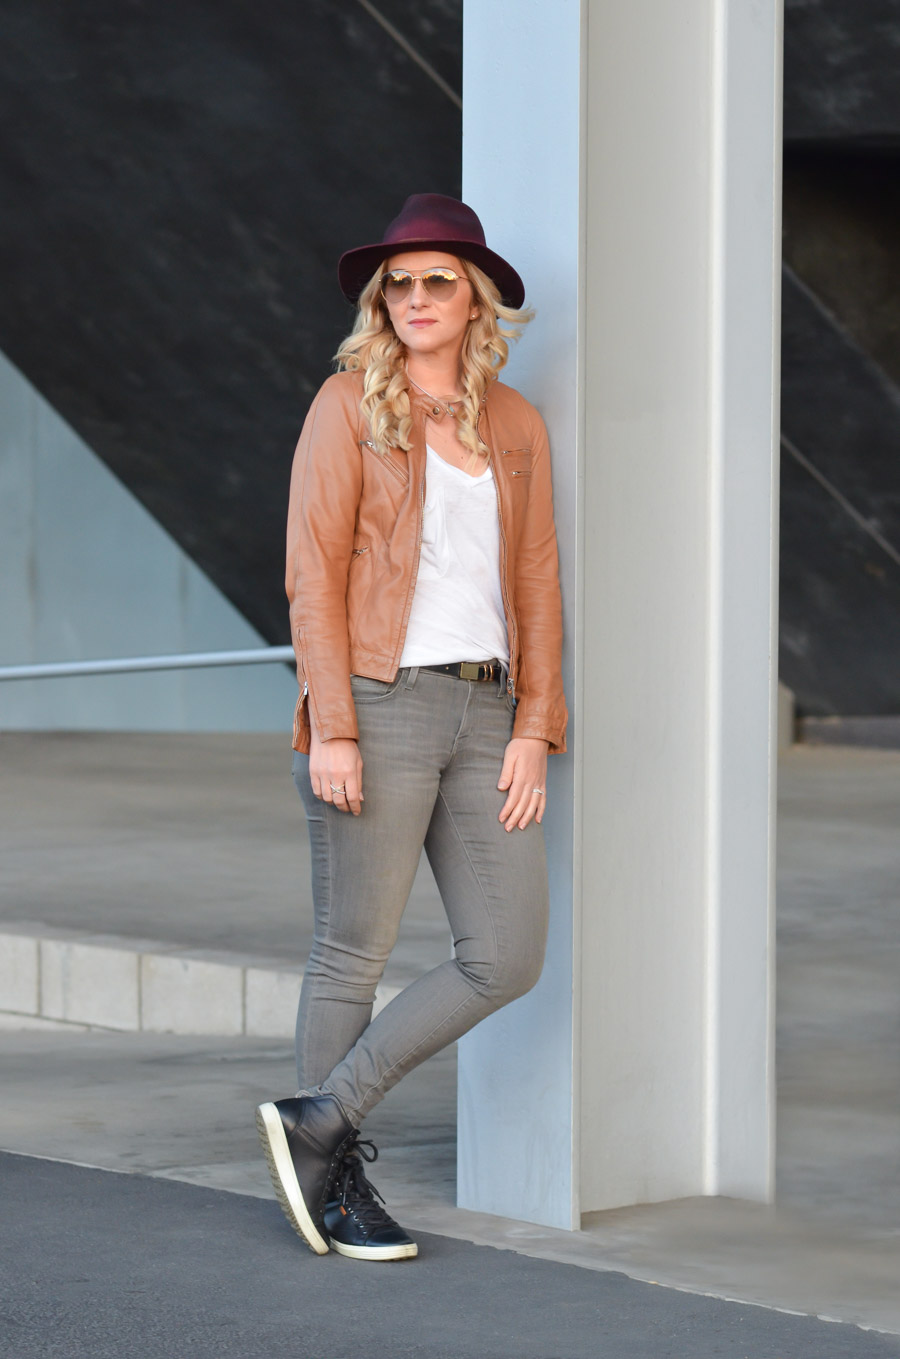 Grey Jeans Outfit for Women